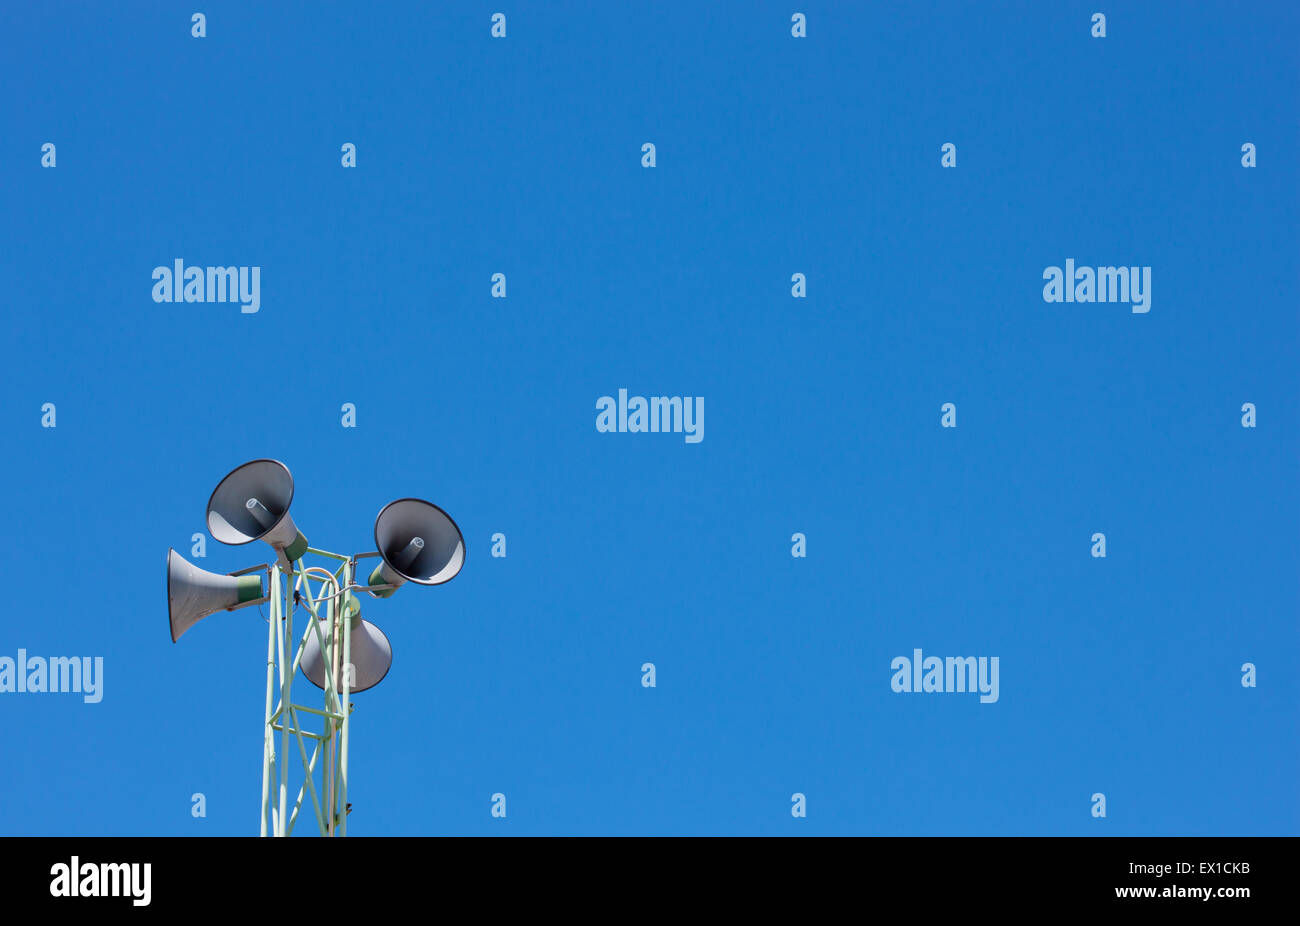 megaphone and blue sky - Stock Image